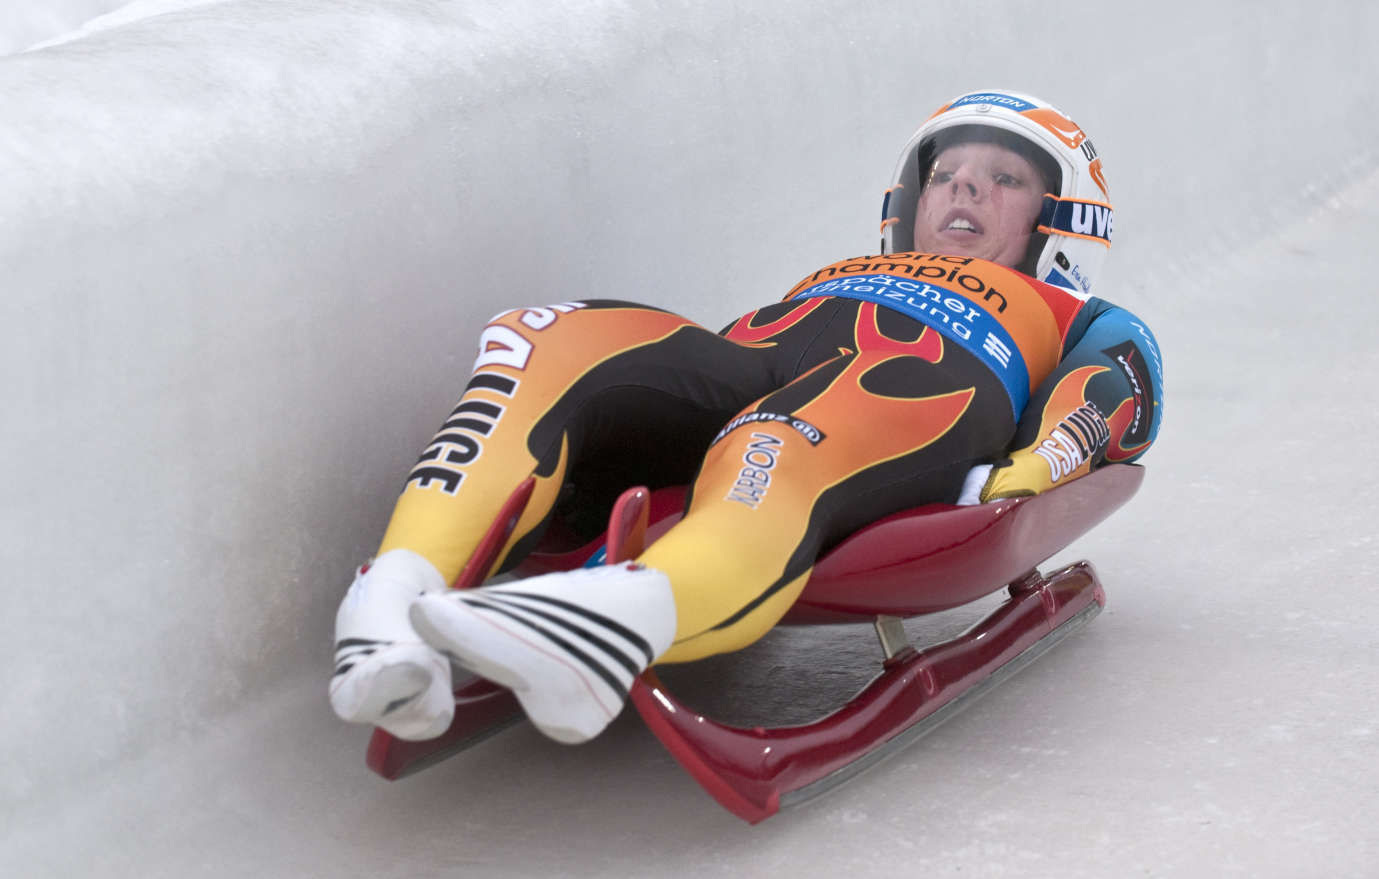 1379x879 - Luge Wallpapers 7